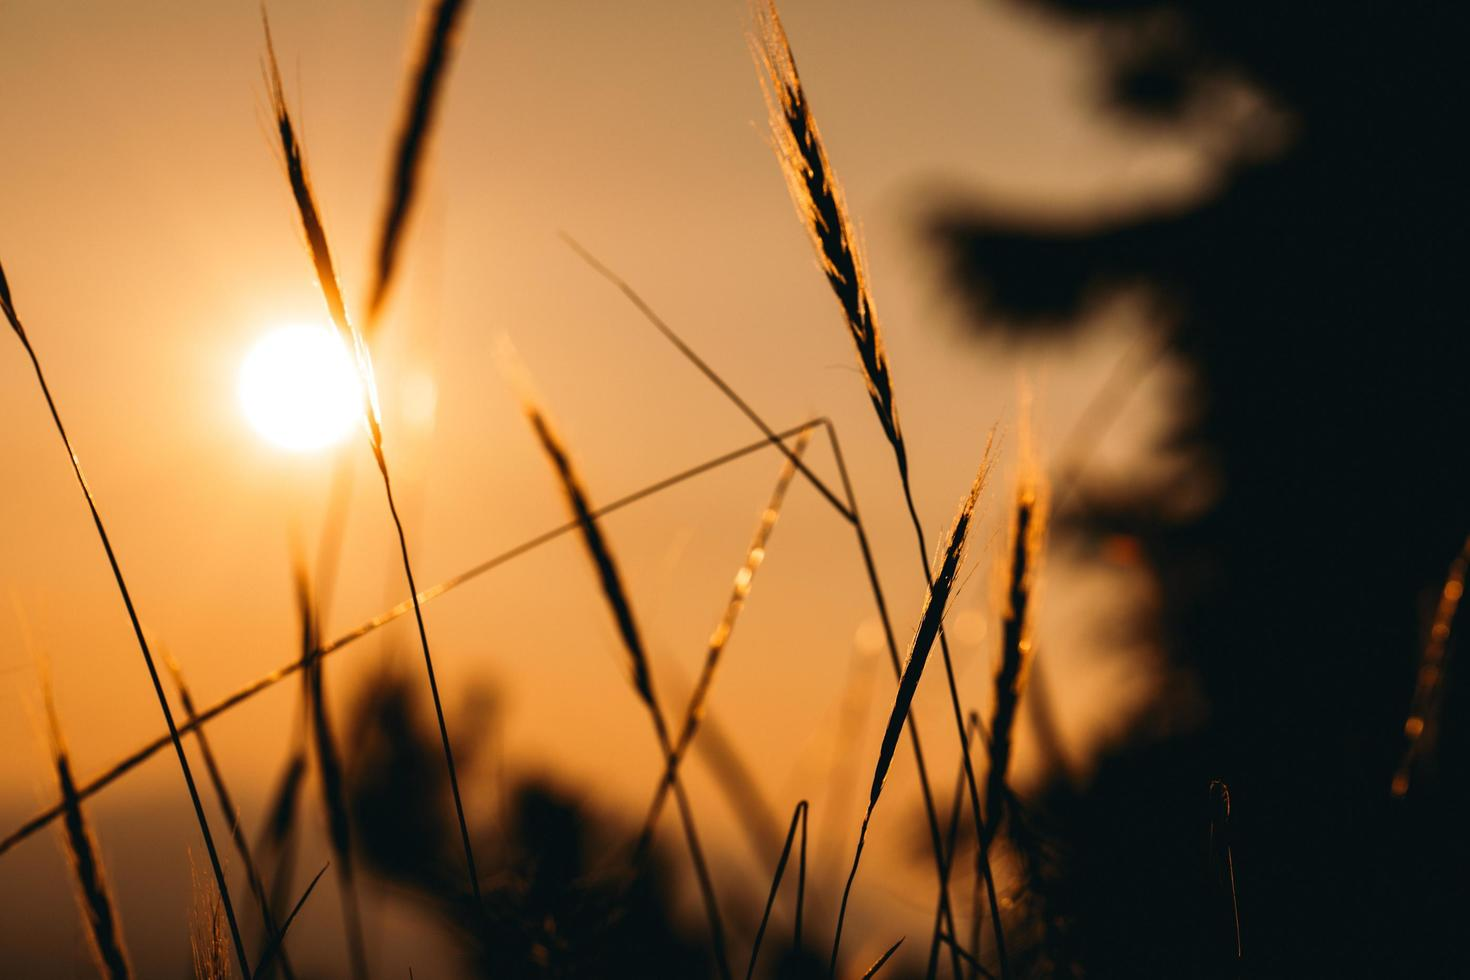 Brown wheat during golden hour photo